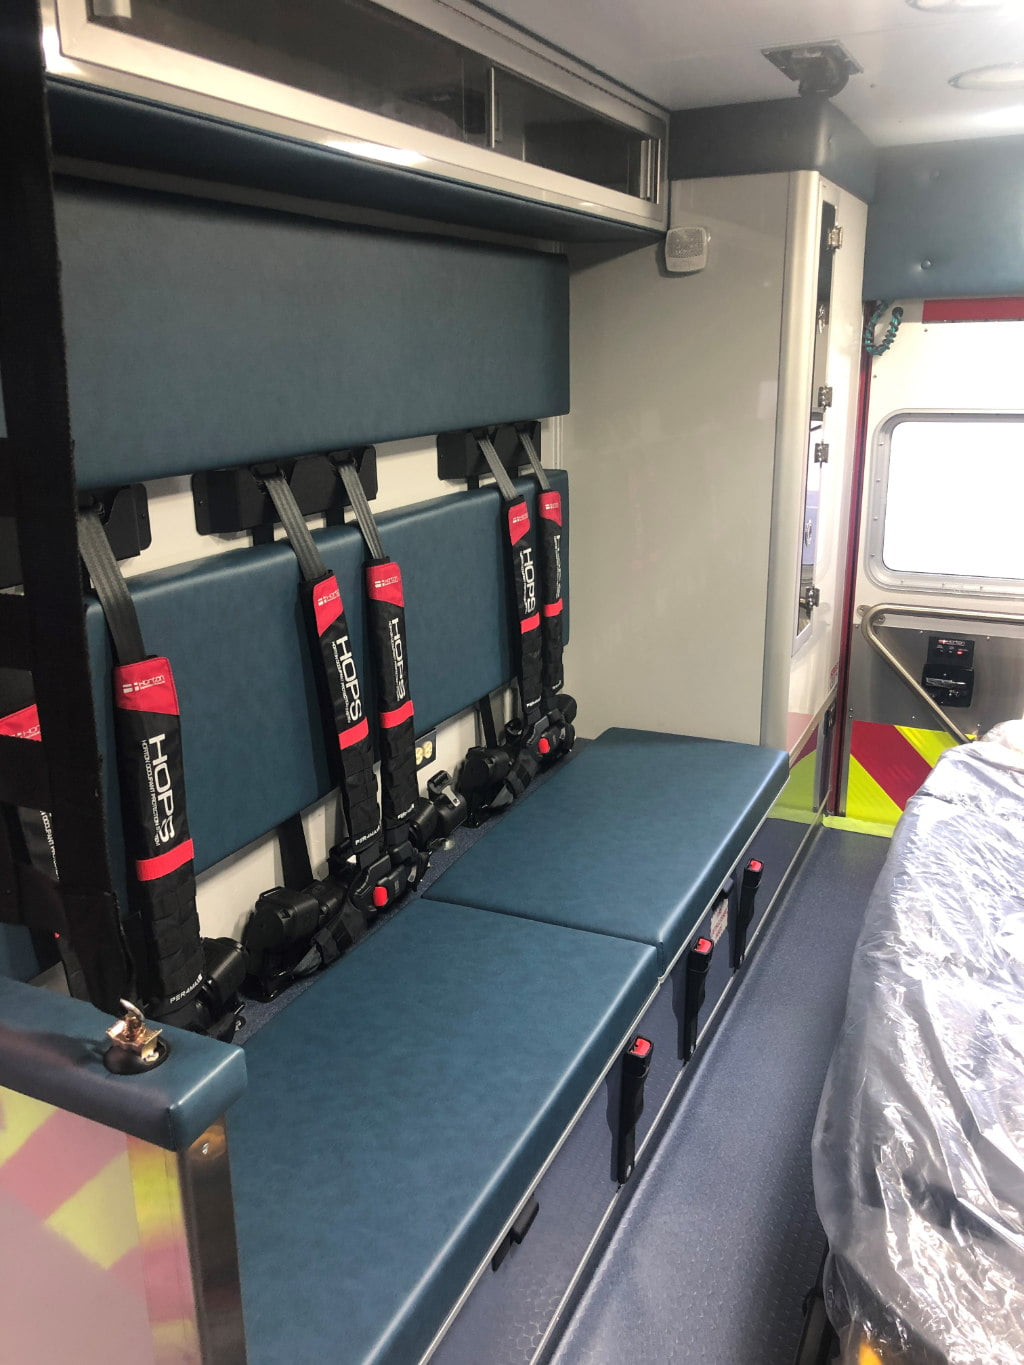 The squad bench area on the new Horton ambulance for North Andover. The ambulance has the Horton Occupant Protection System, which includes Per4Max four-point harness on all seating positions.